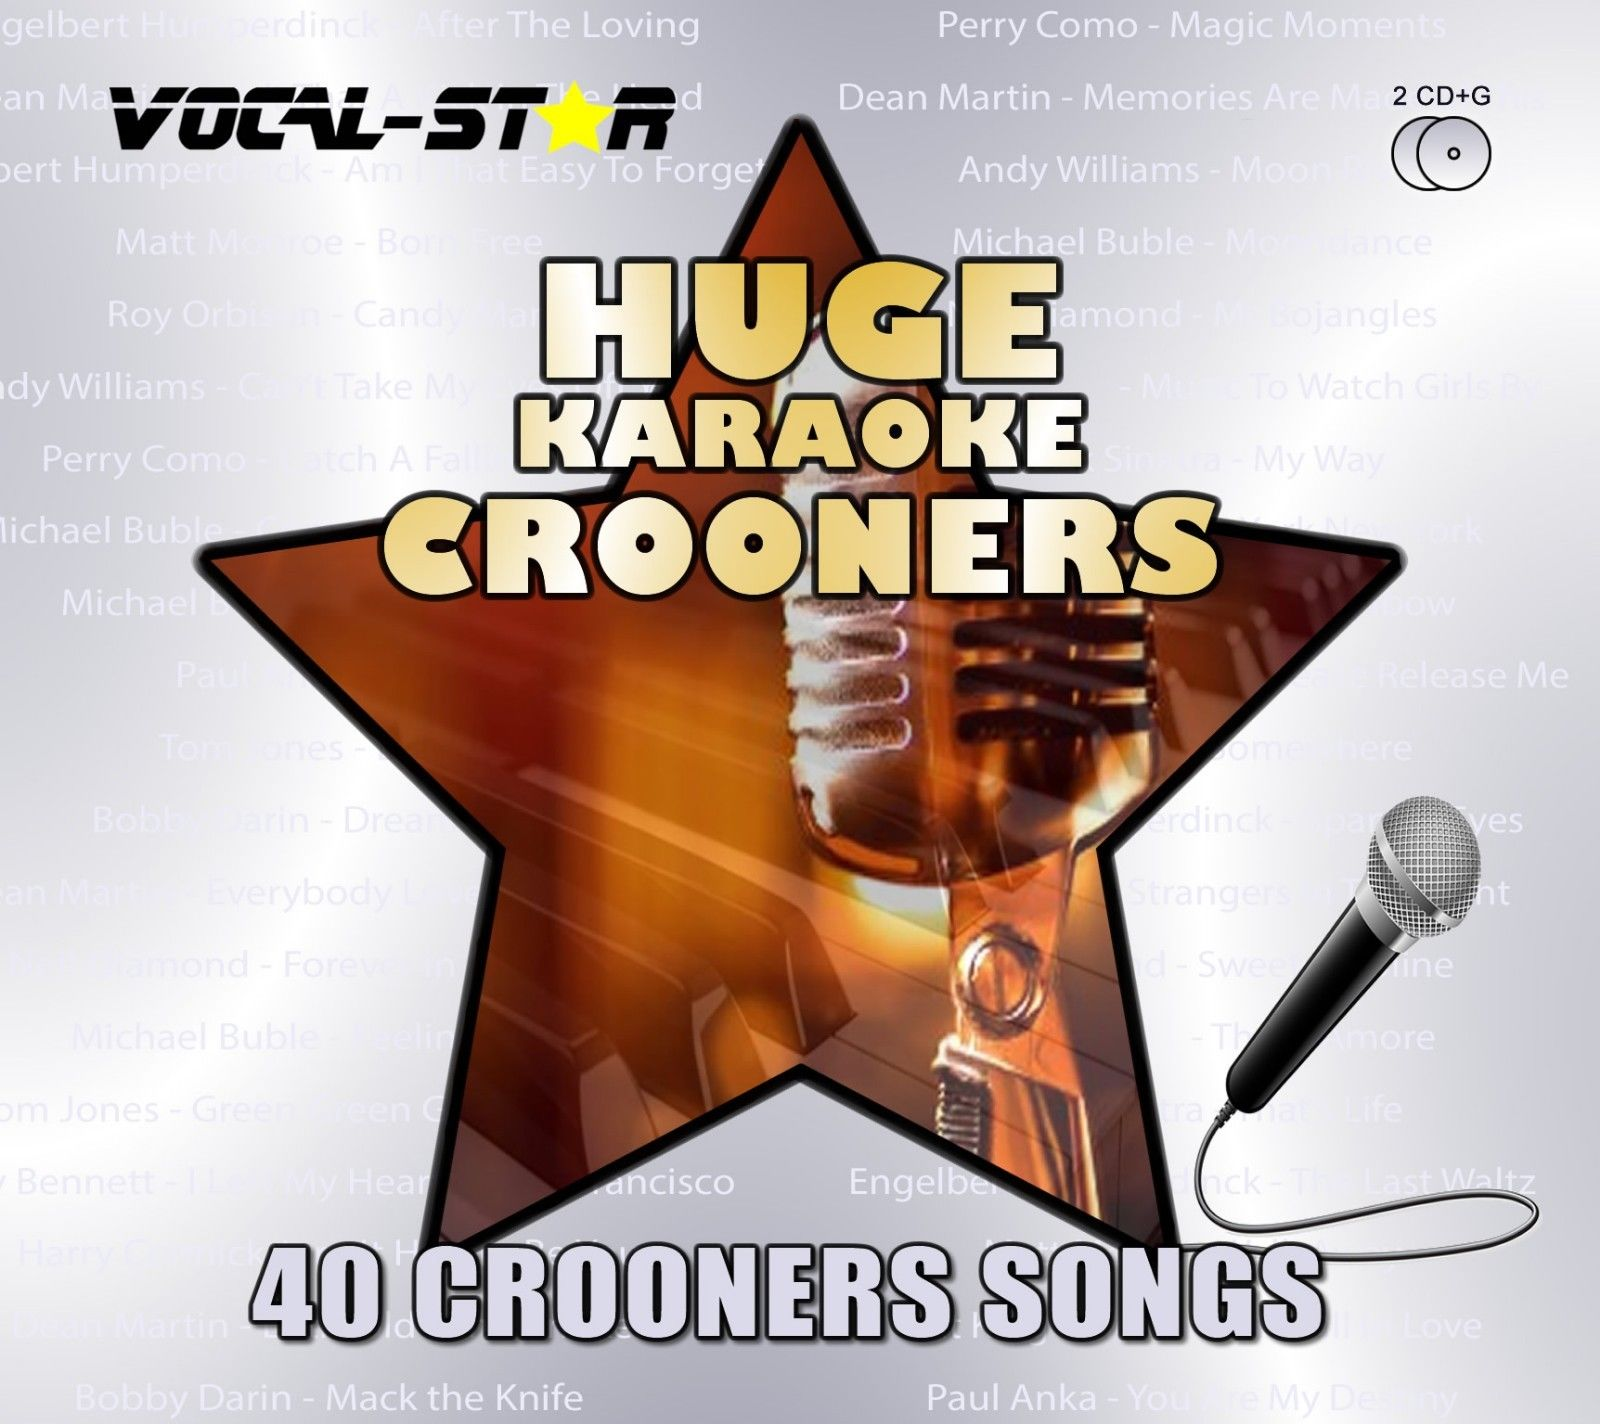 Vocal-Star Huge Karaoke Hits of Crooners - 40 Songs - 2 CDG Disc Set